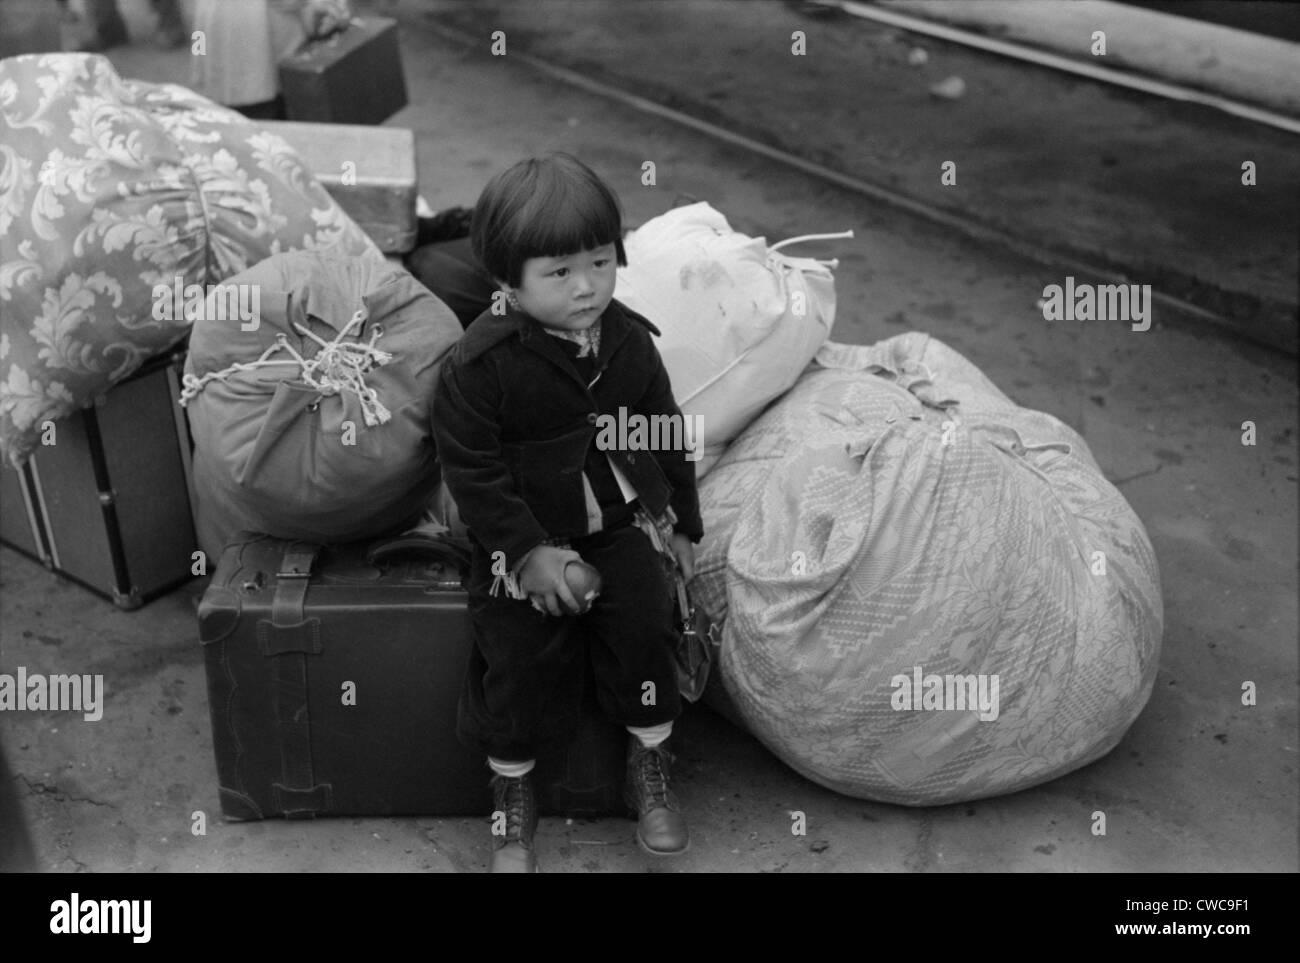 Japanese-American internee. Little child being evacuated with his parents to Owens Valley Internment Camp Manzanar - Stock Image